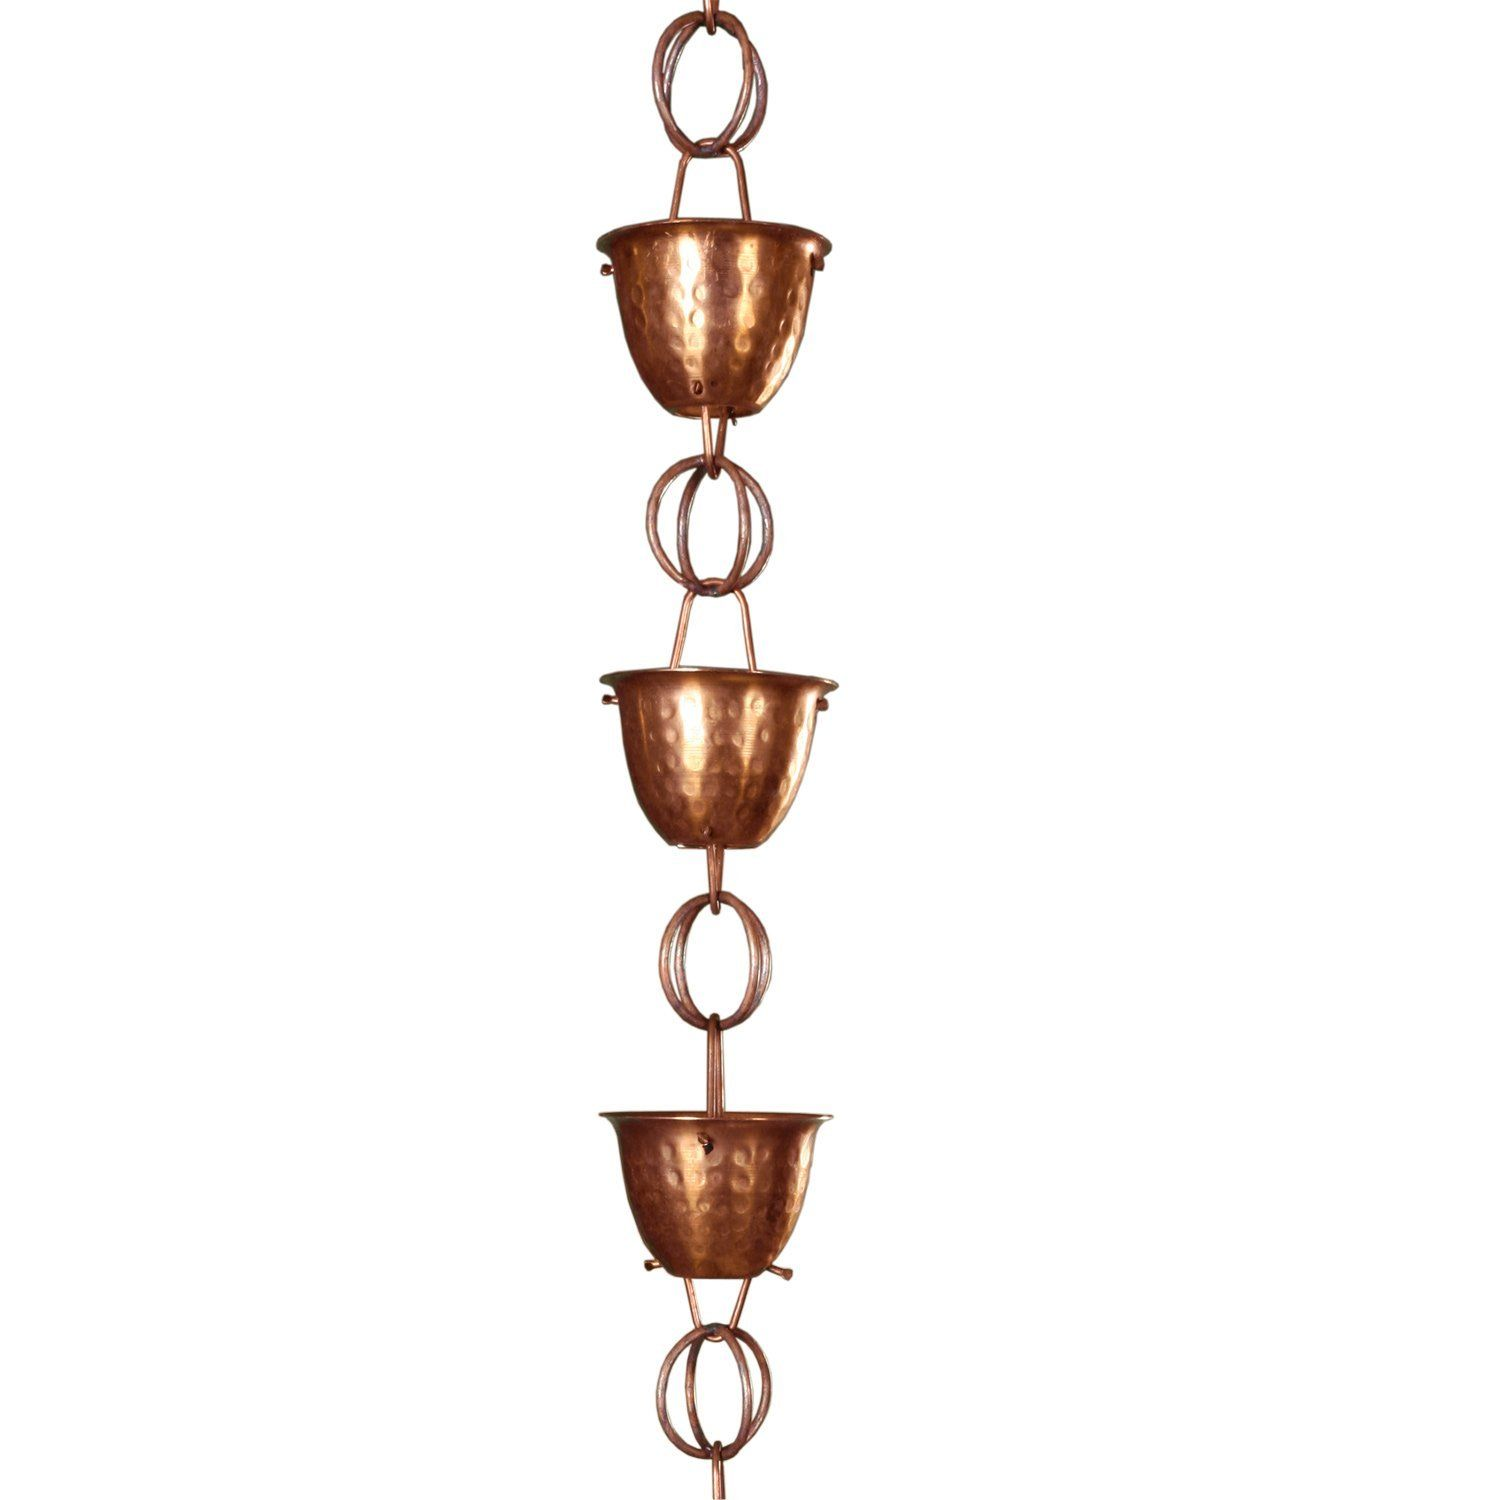 Robot Check Copper Rain Chains Rain Chain Copper Cups